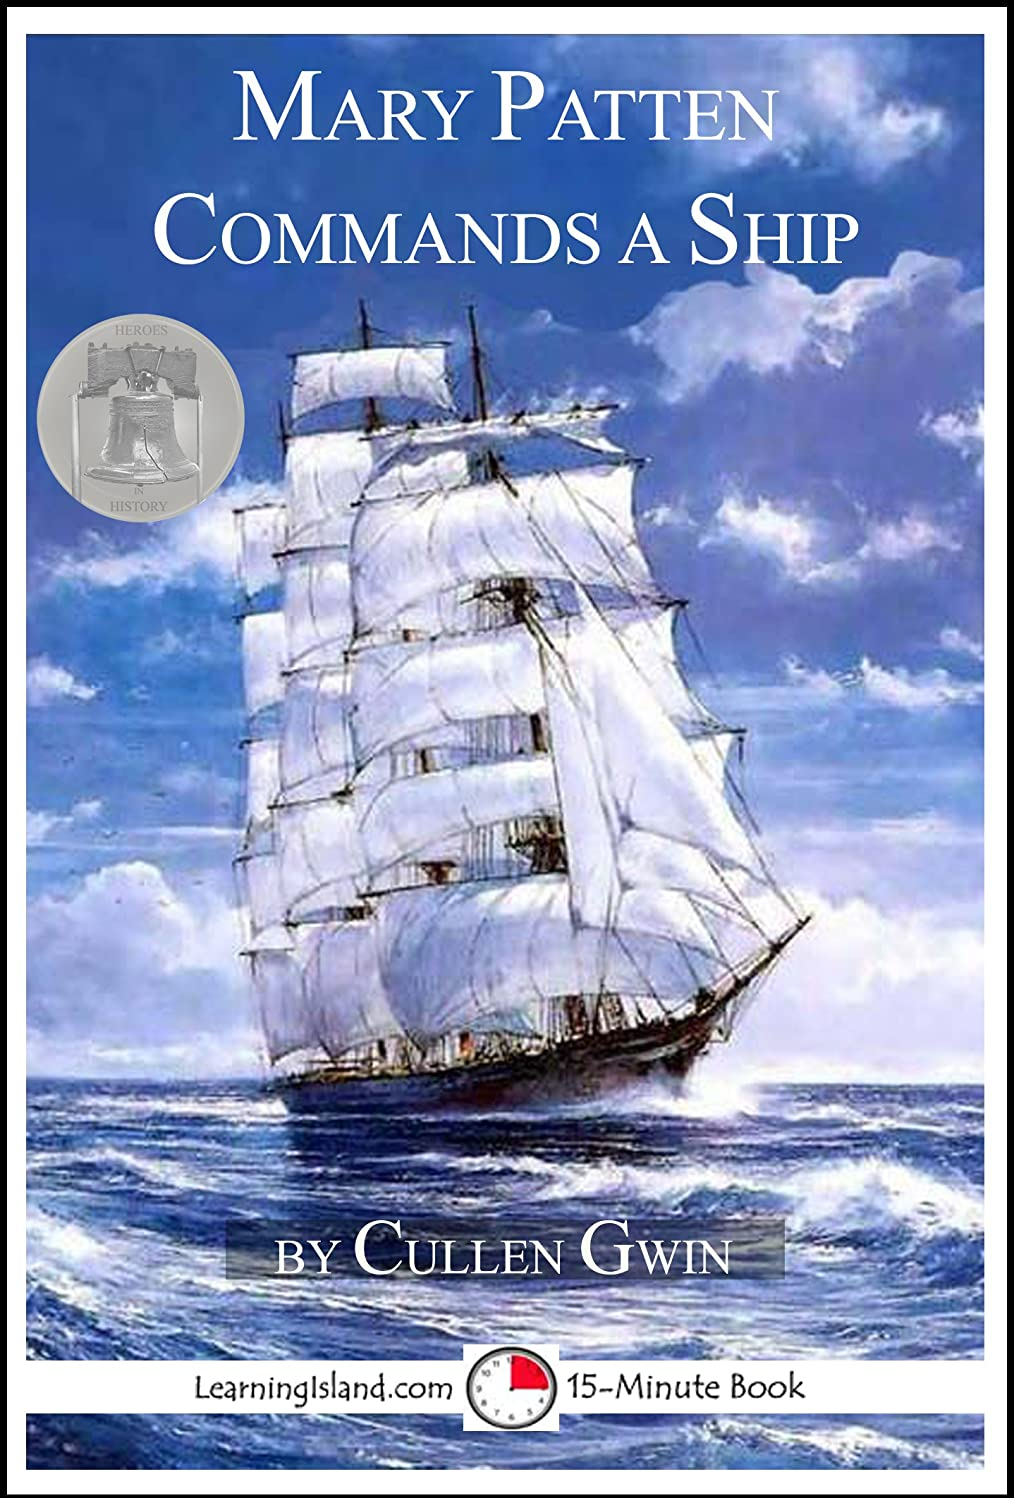 Mary Patten Commands a Ship: A 15-Minute Book (15-Minute Books 1232) (English Edition)